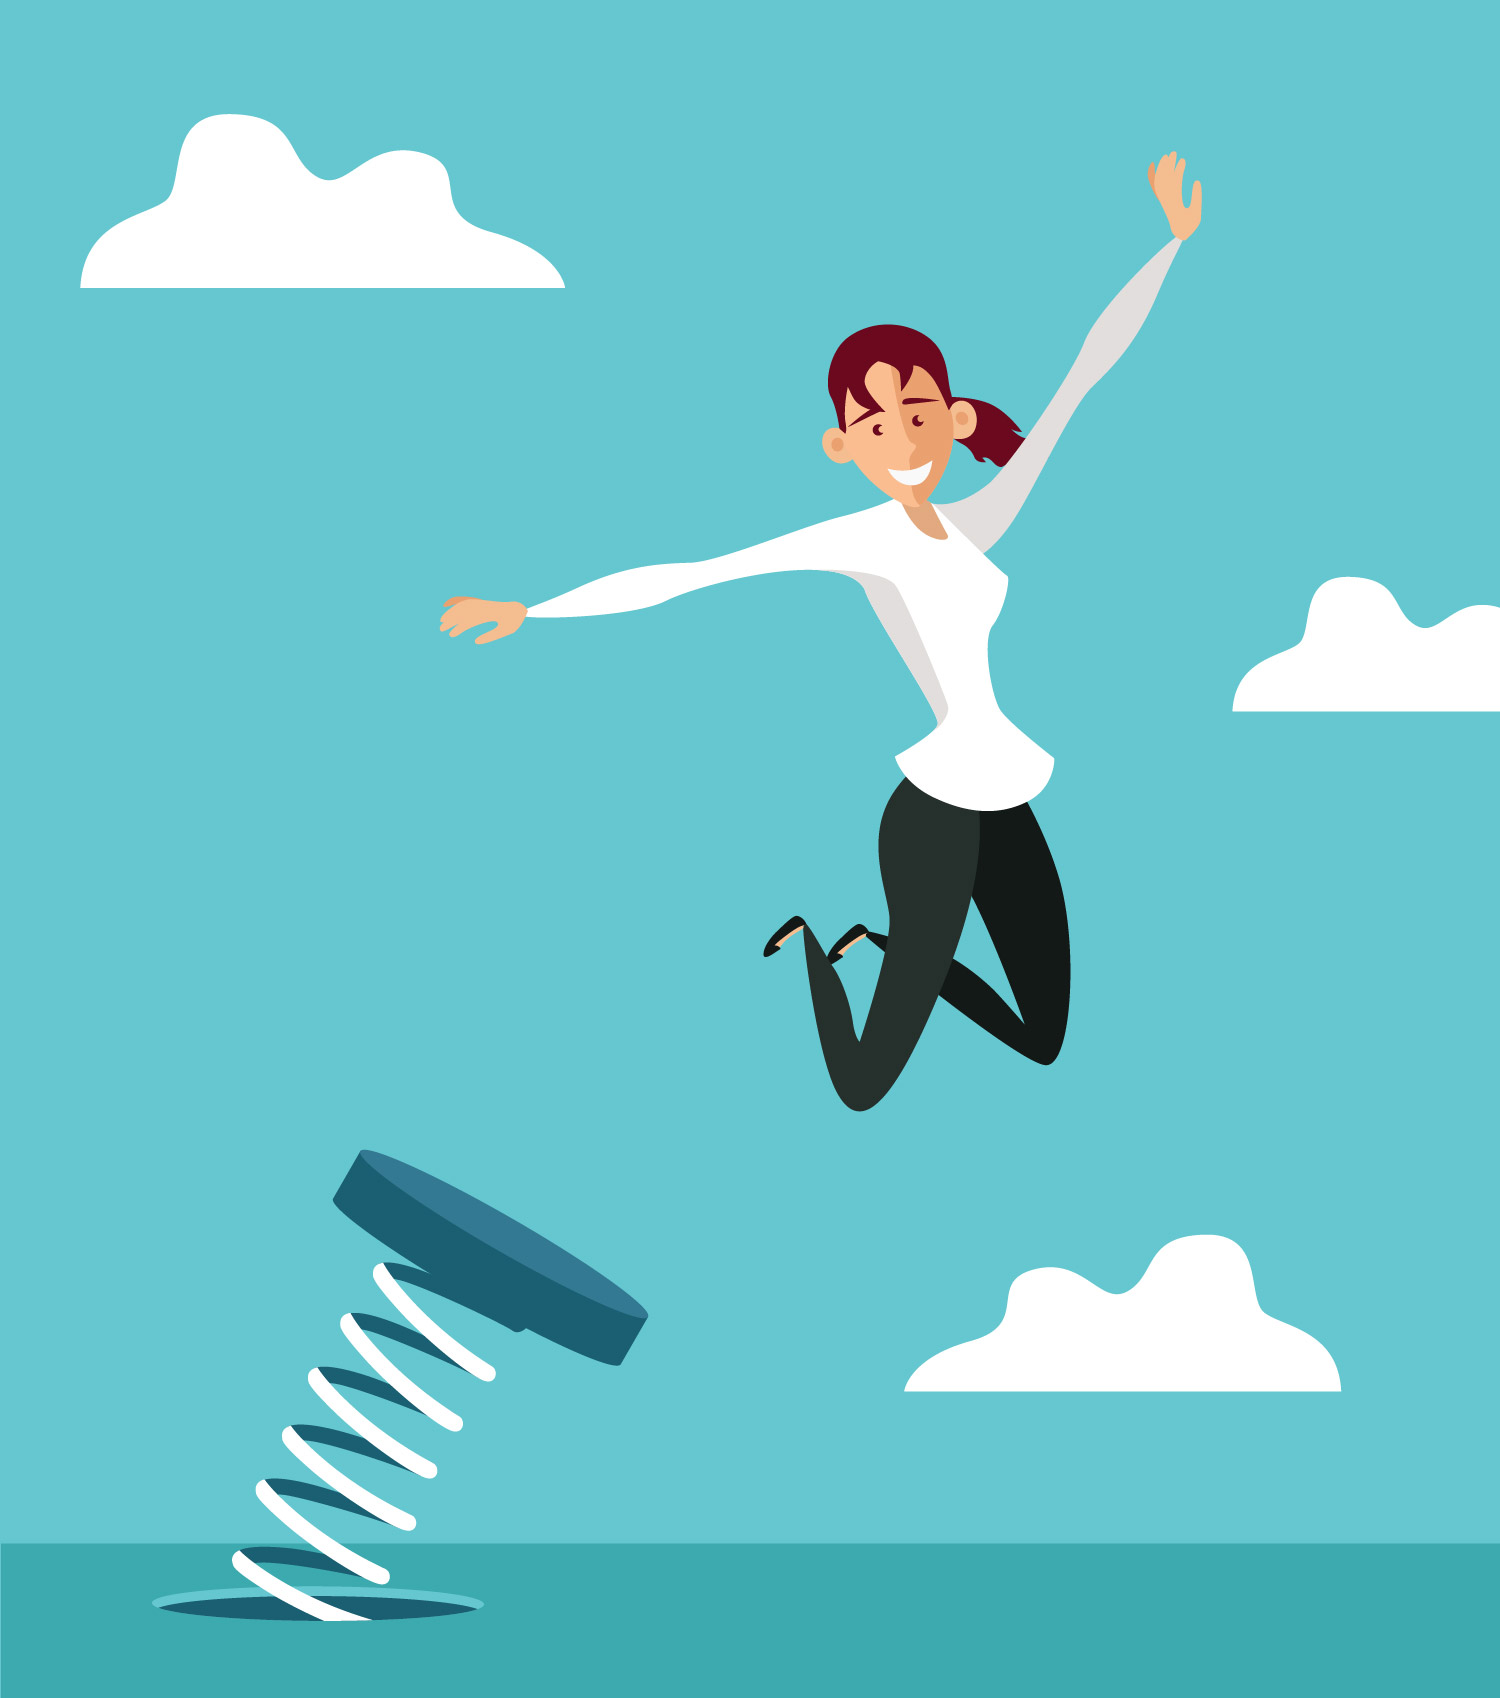 woman jumping springboard download free vector art cheerleader vector art cheerleader victory cheer